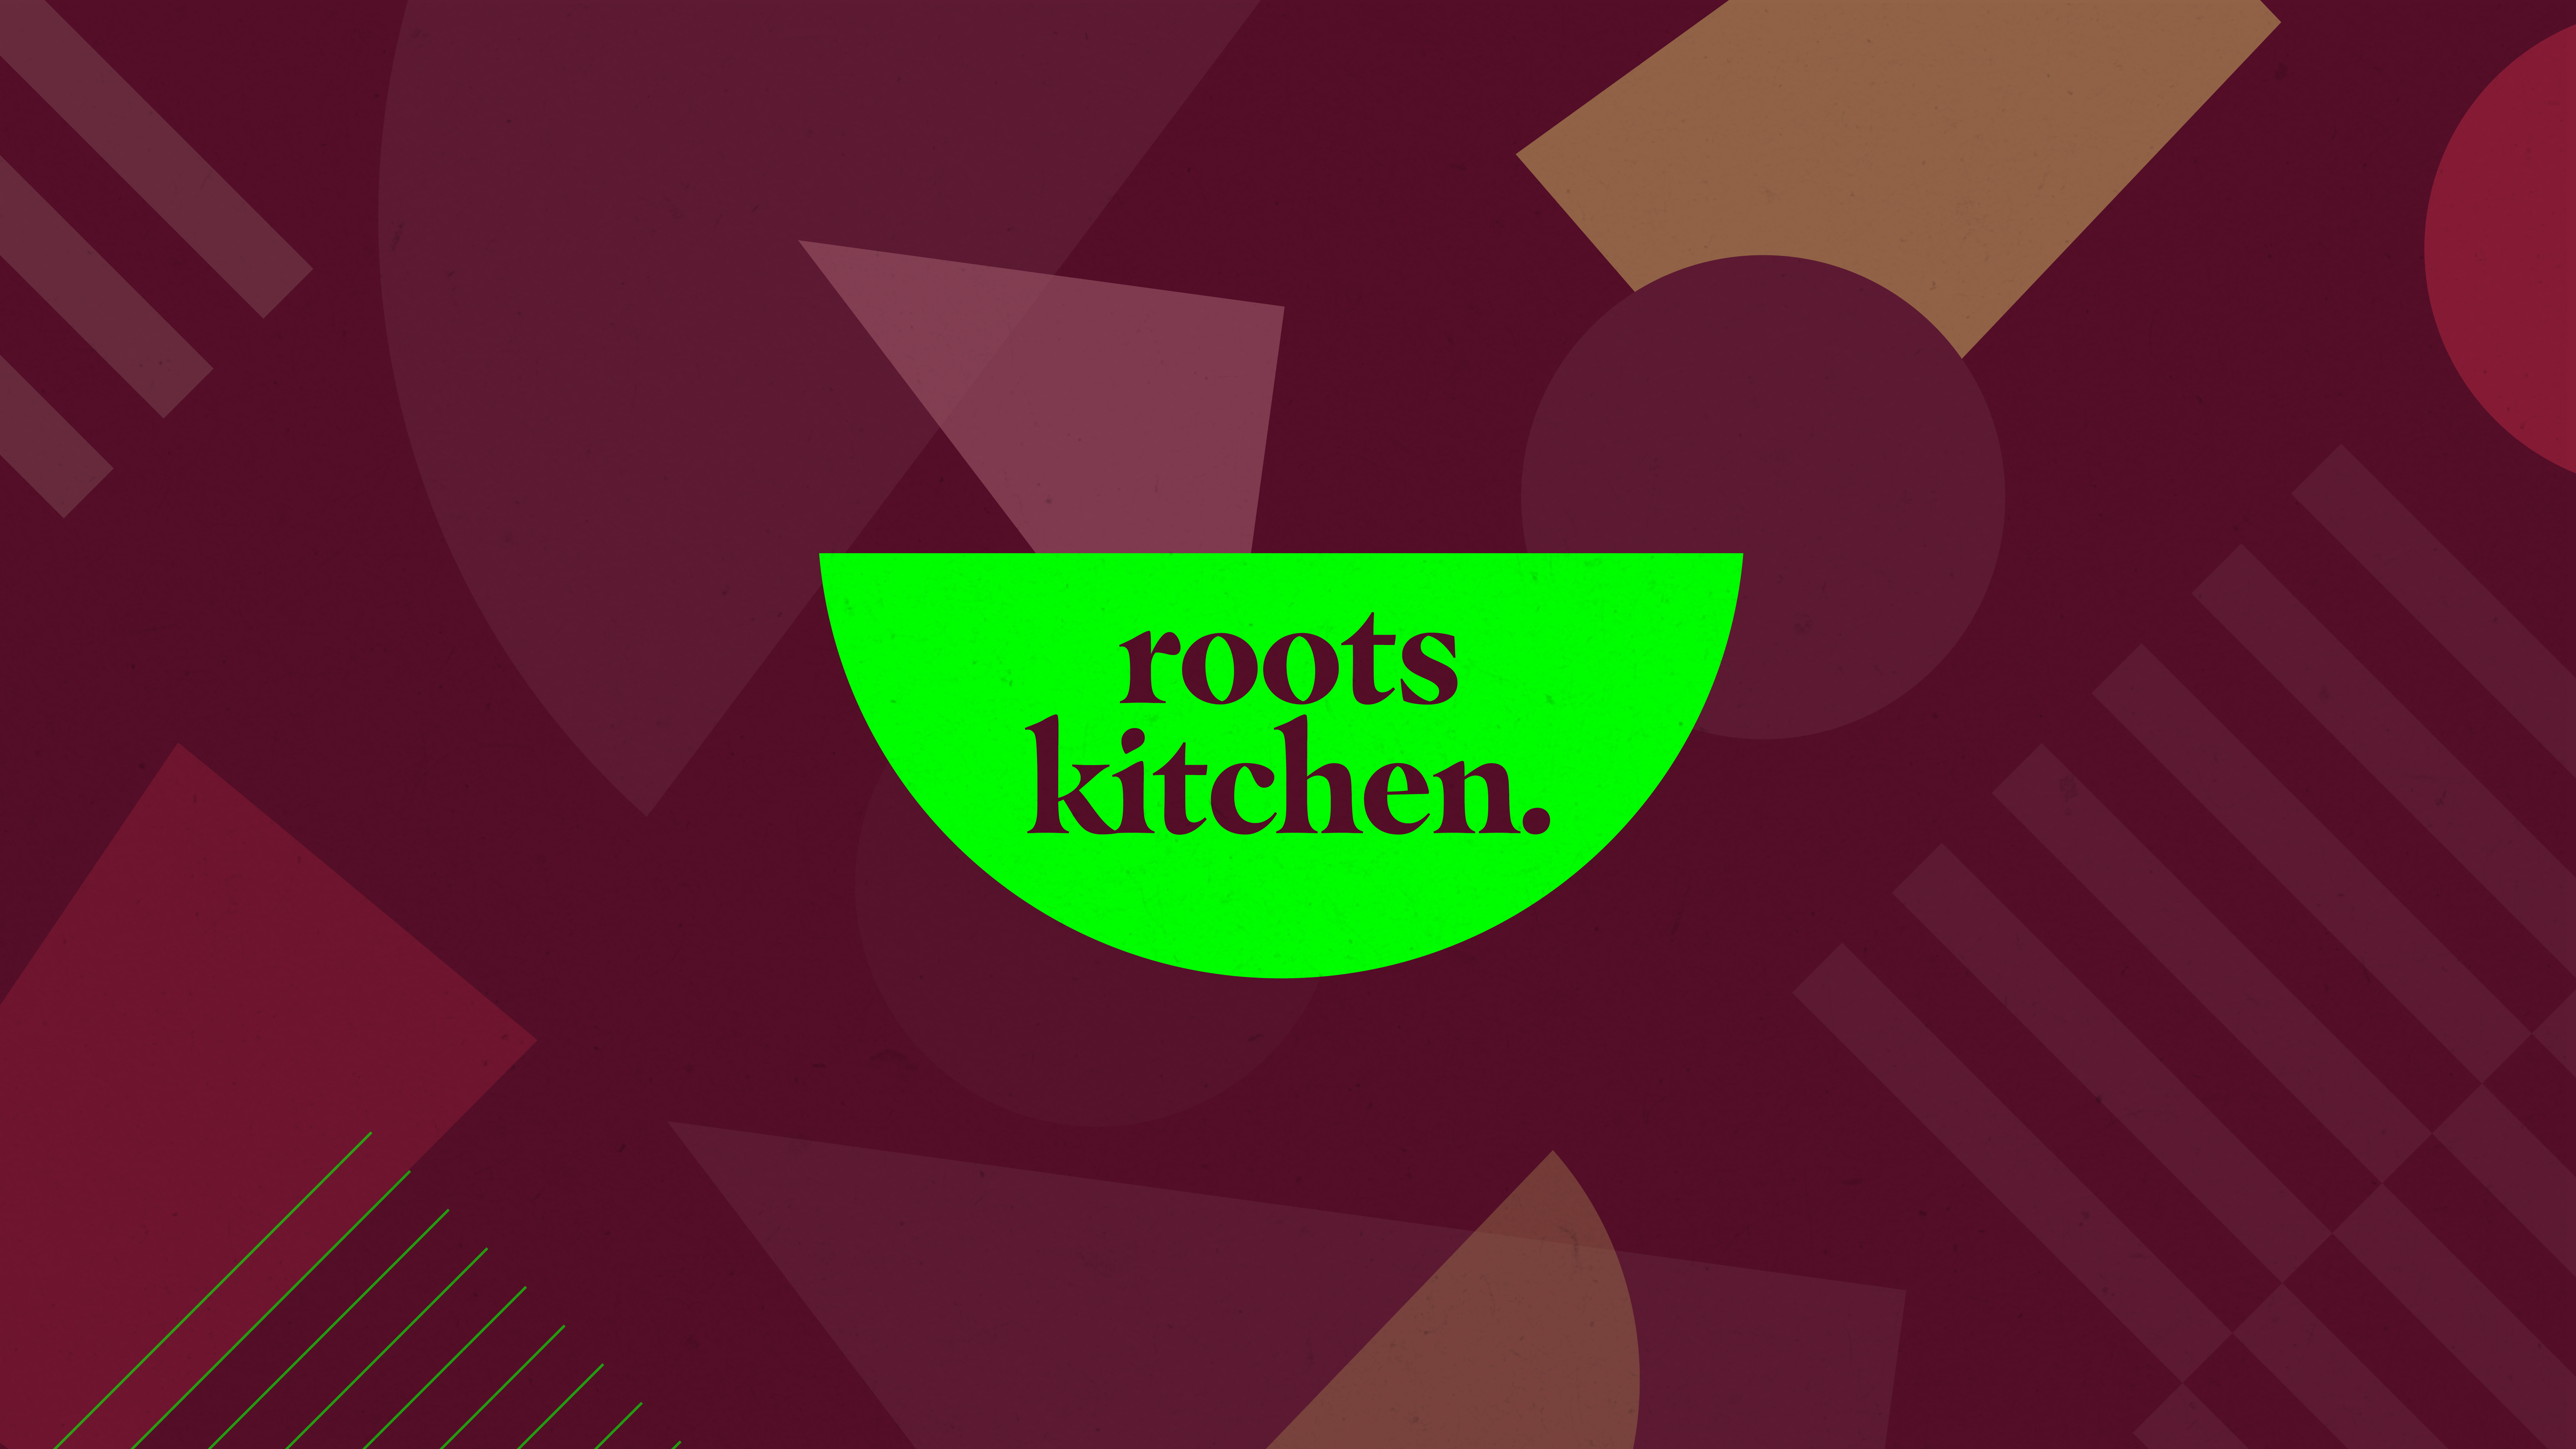 Cover image: Roots Kitchen